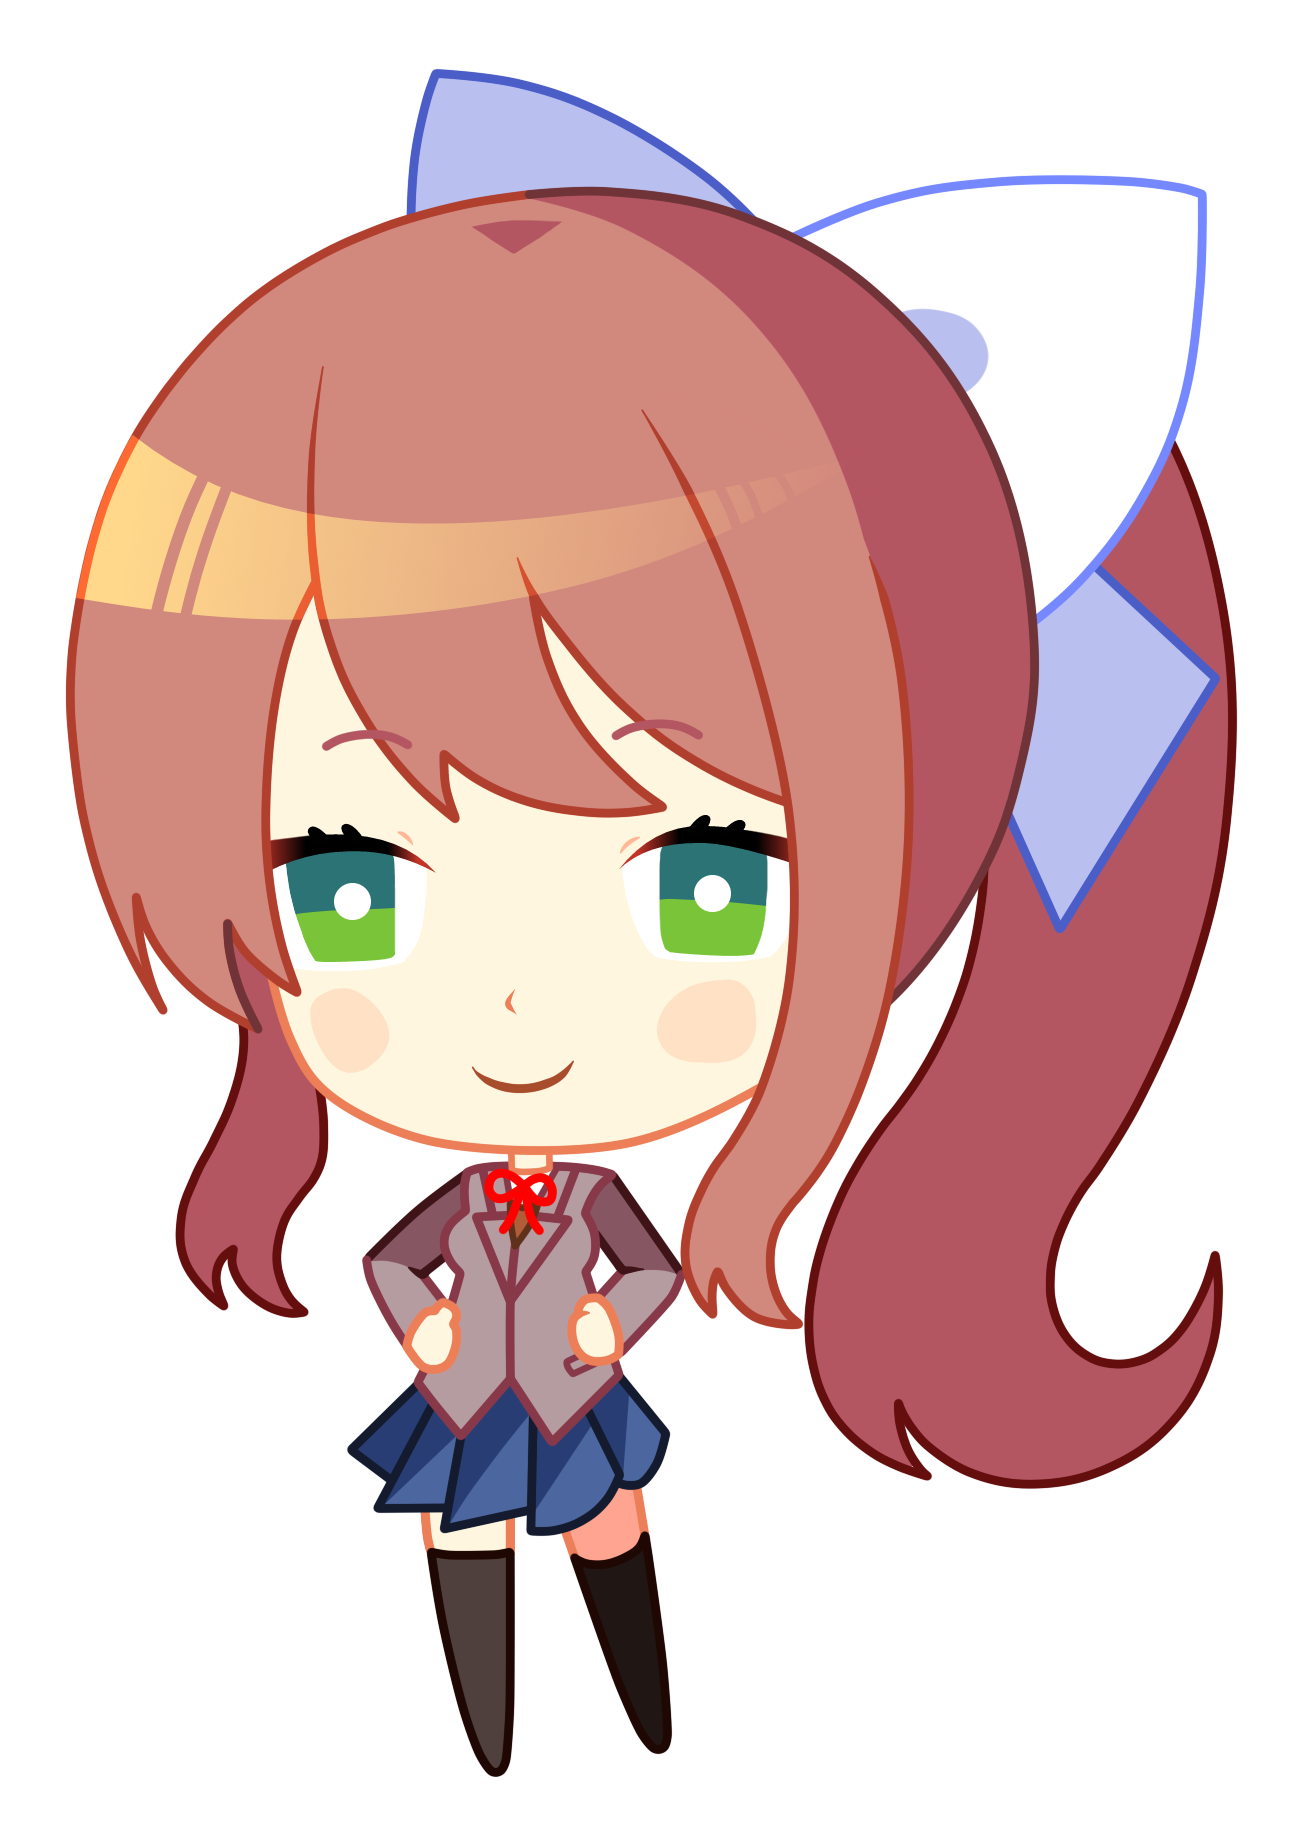 Monika chibi png. Updated hd remade for